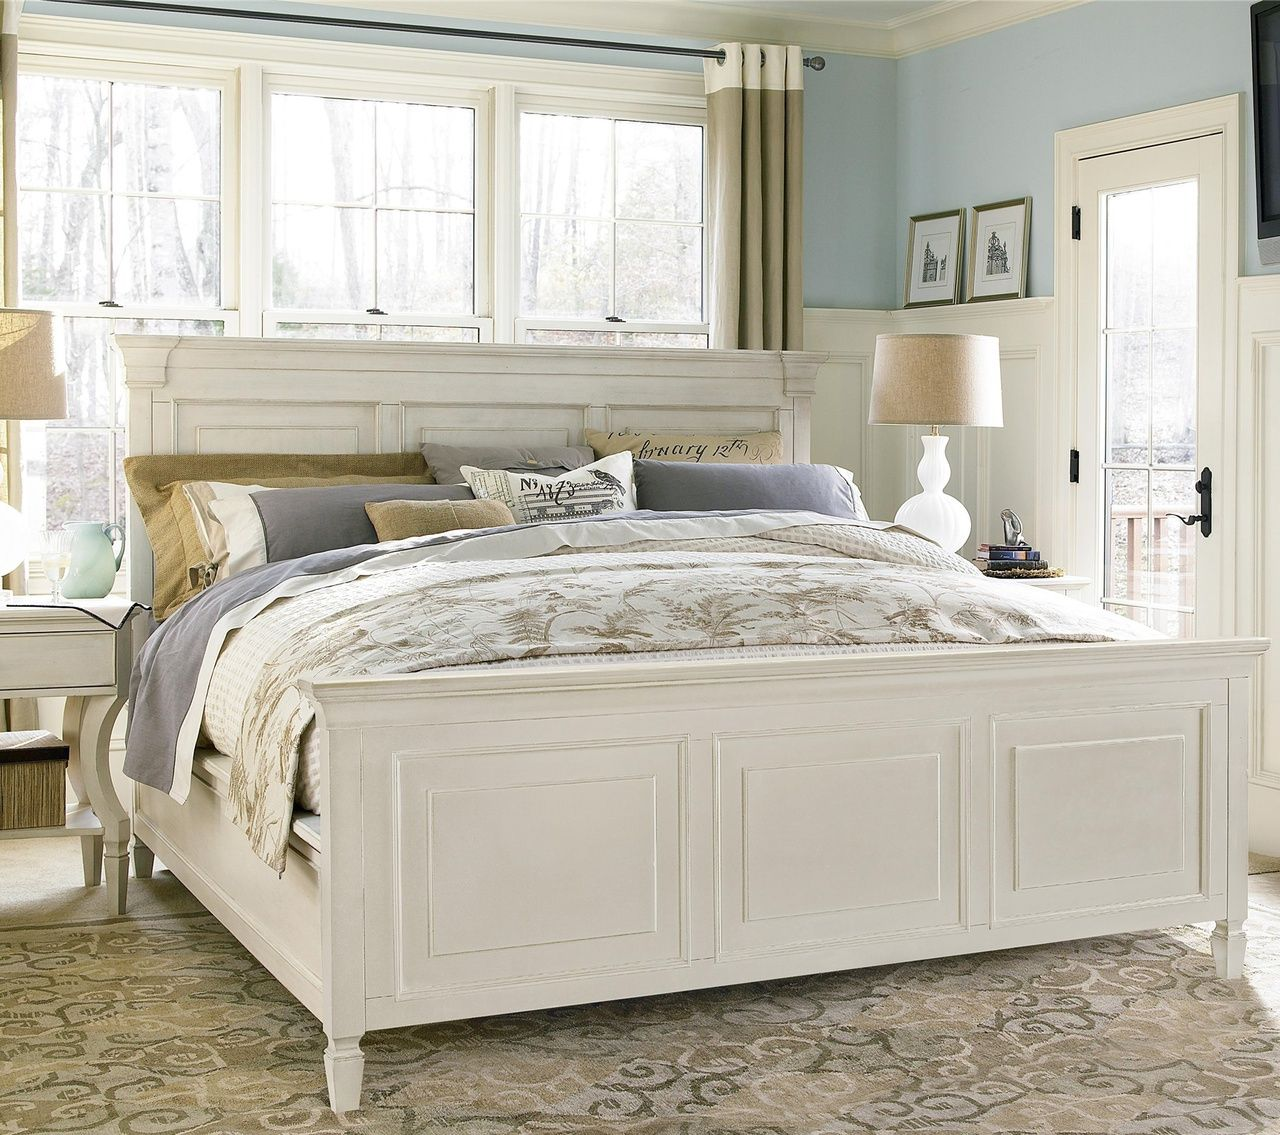 Country Chic White Queen Size Bed Frame Beach Bedroom Furniture